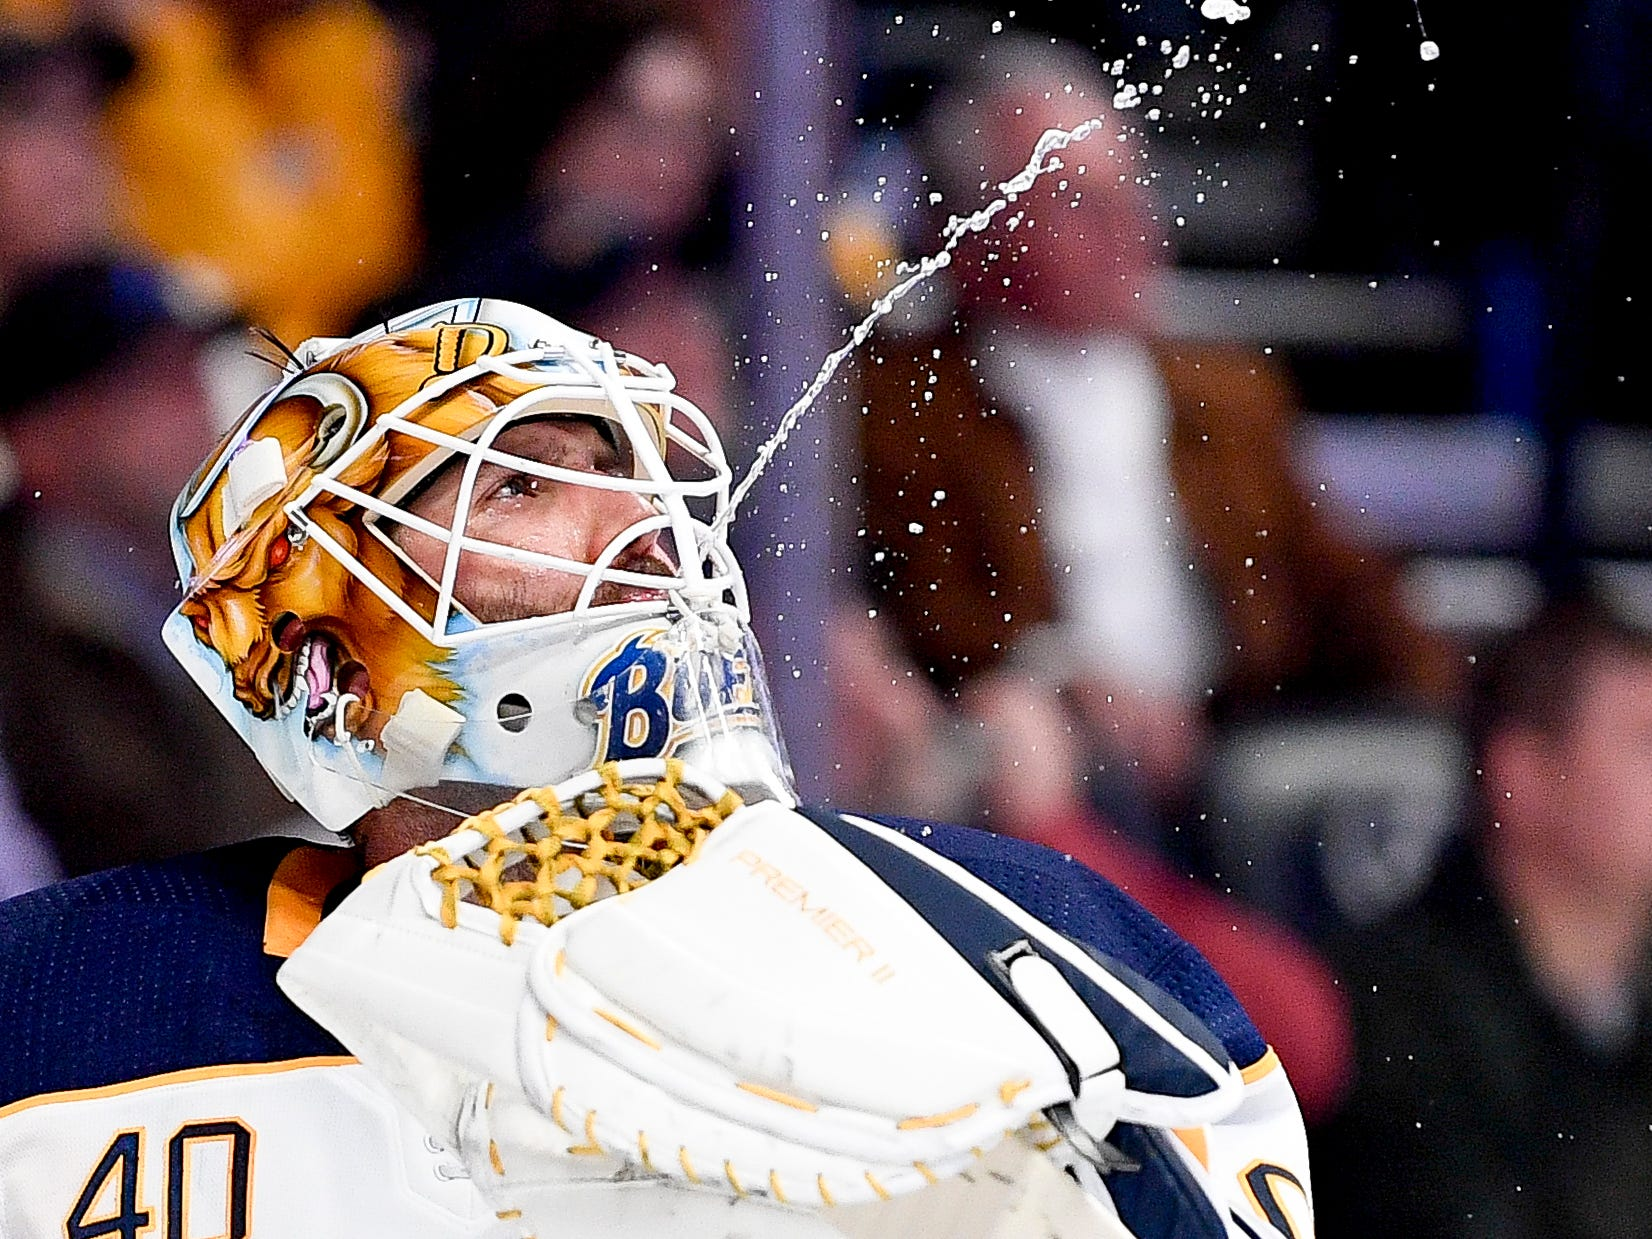 Buffalo Sabres goaltender Carter Hutton (40) spits out water while waiting for gameplay to resume against the Nashville Predators during the first period at Bridgestone Arena in Nashville, Tenn., Monday, Dec. 3, 2018.